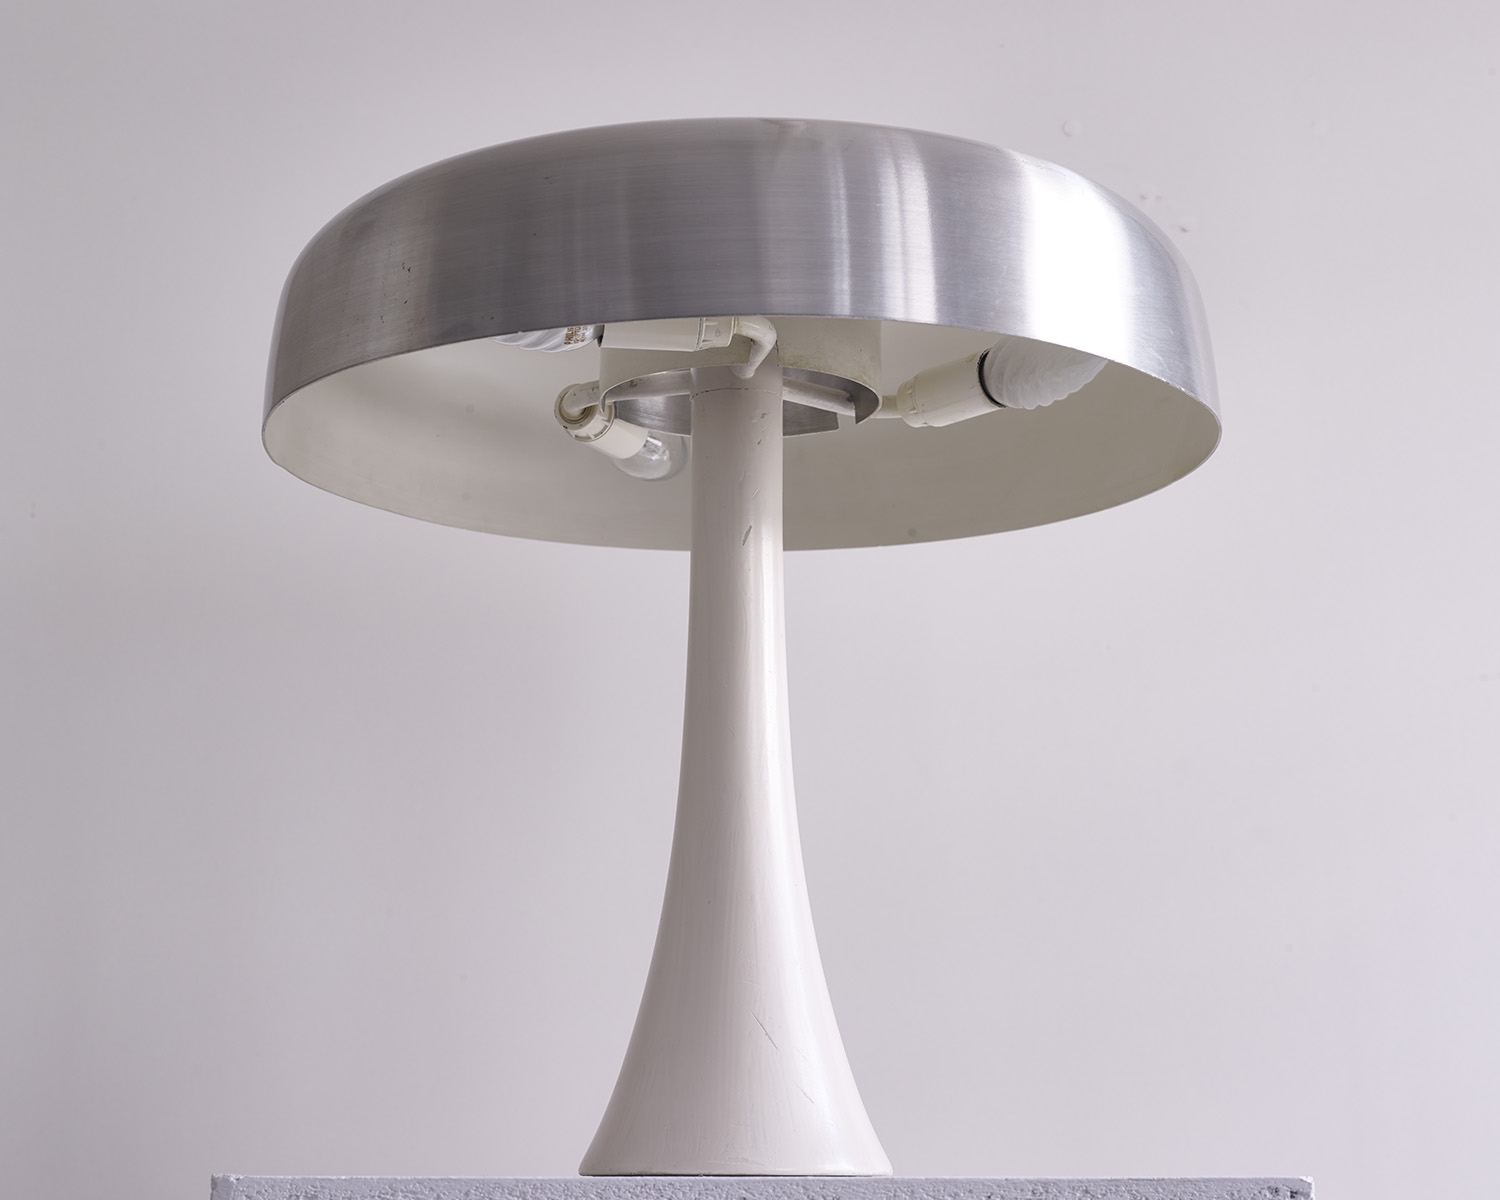 chrome-table-lamp-1970-image-03